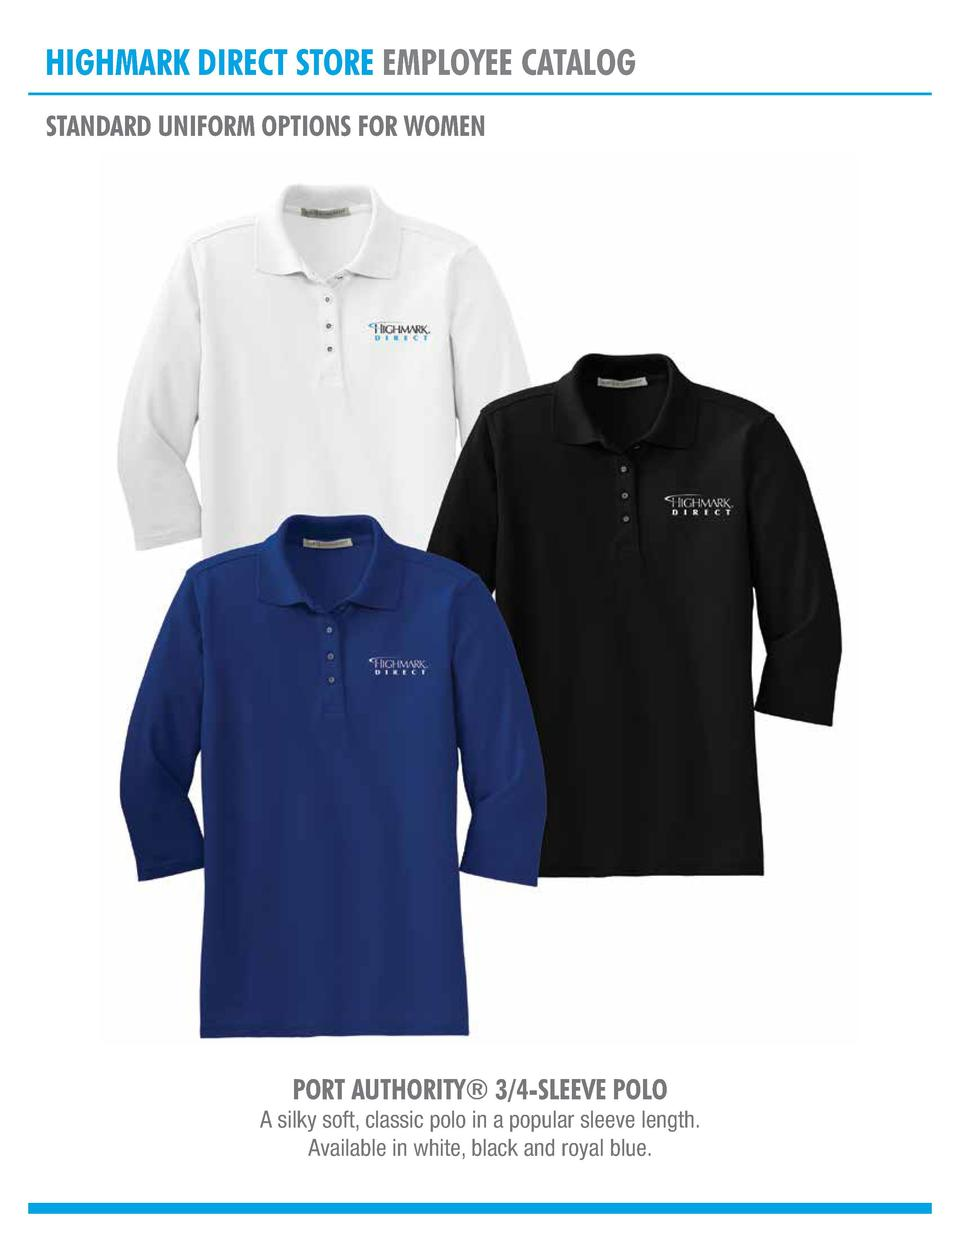 HIGHMARK DIRECT STORE EMPLOYEE CATALOG STANDARD UNIFORM OPTIONS FOR WOMEN  PORT AUTHORITY   3 4-SLEEVE POLO  A silky soft,...